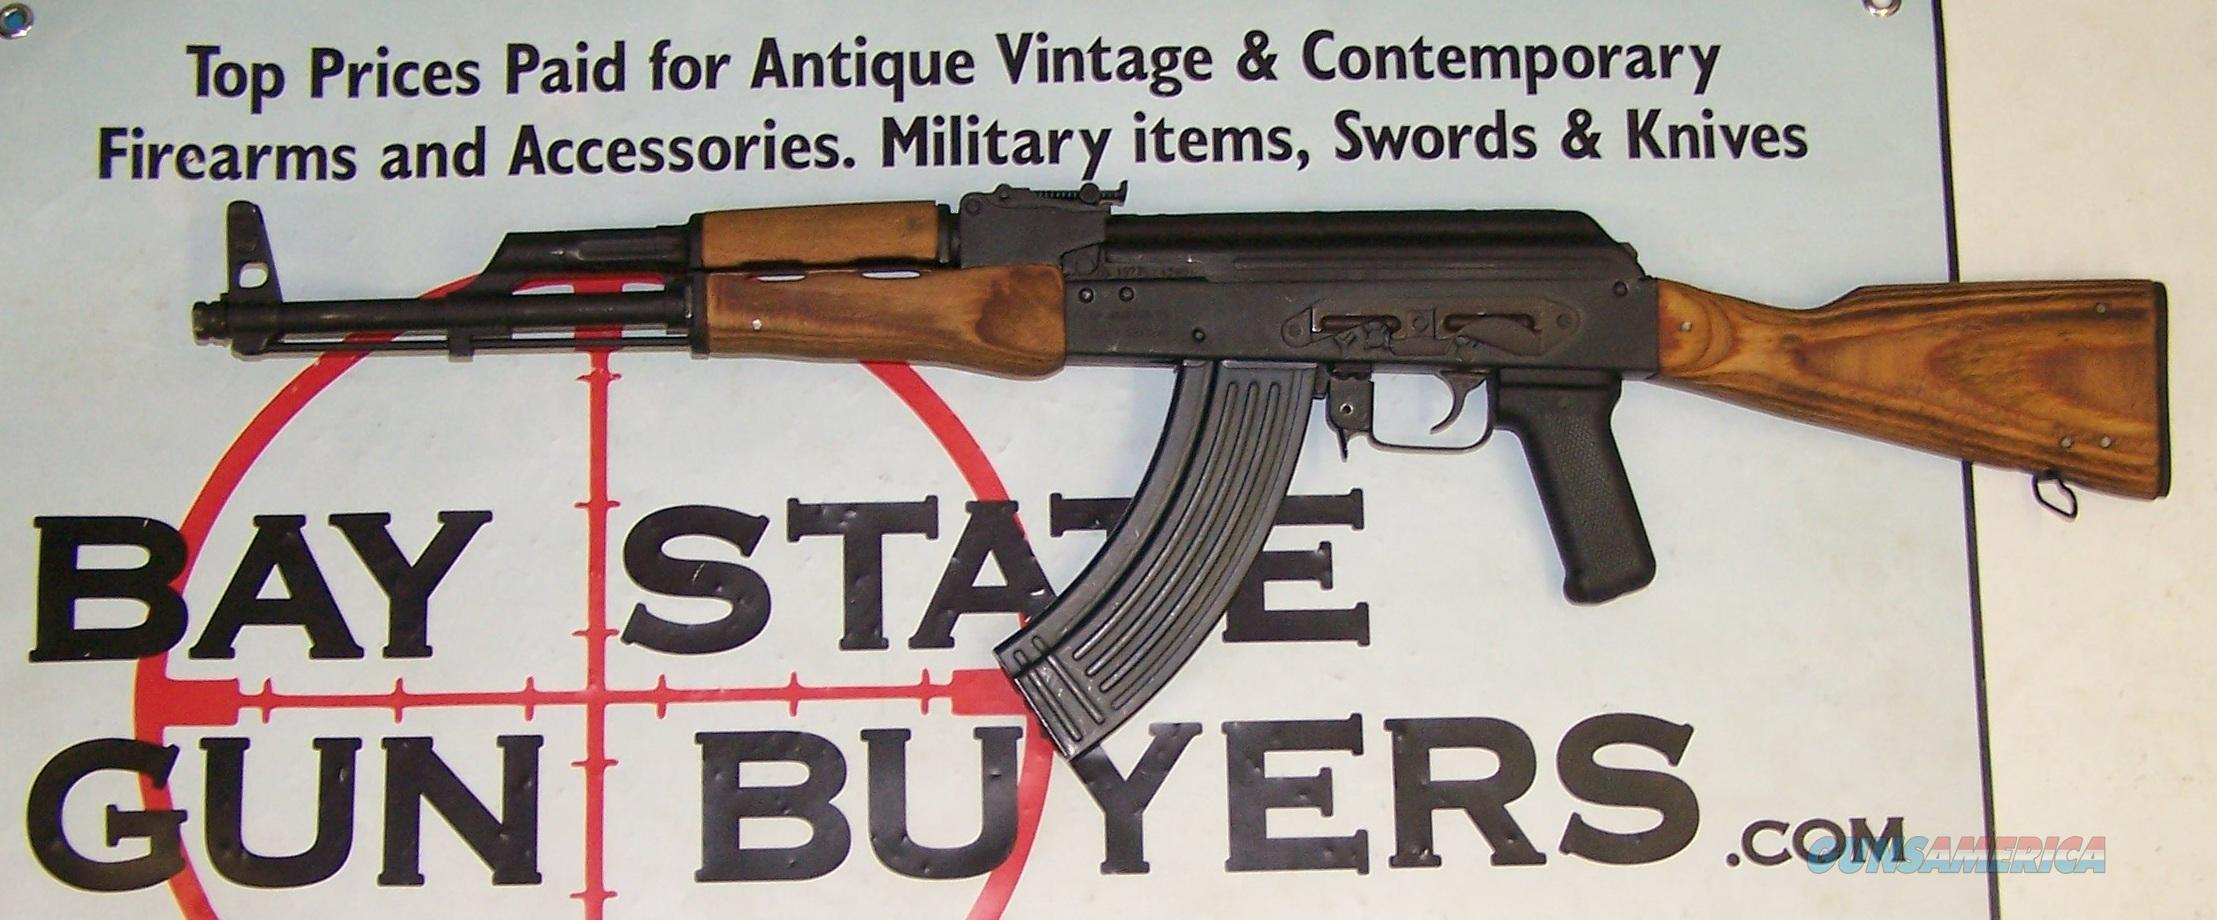 Century Interntion Arms WASR 10 AK-47 rifle 7.62 x 39mm (3) 30 rd magazines  Guns > Rifles > AK-47 Rifles (and copies) > Full Stock